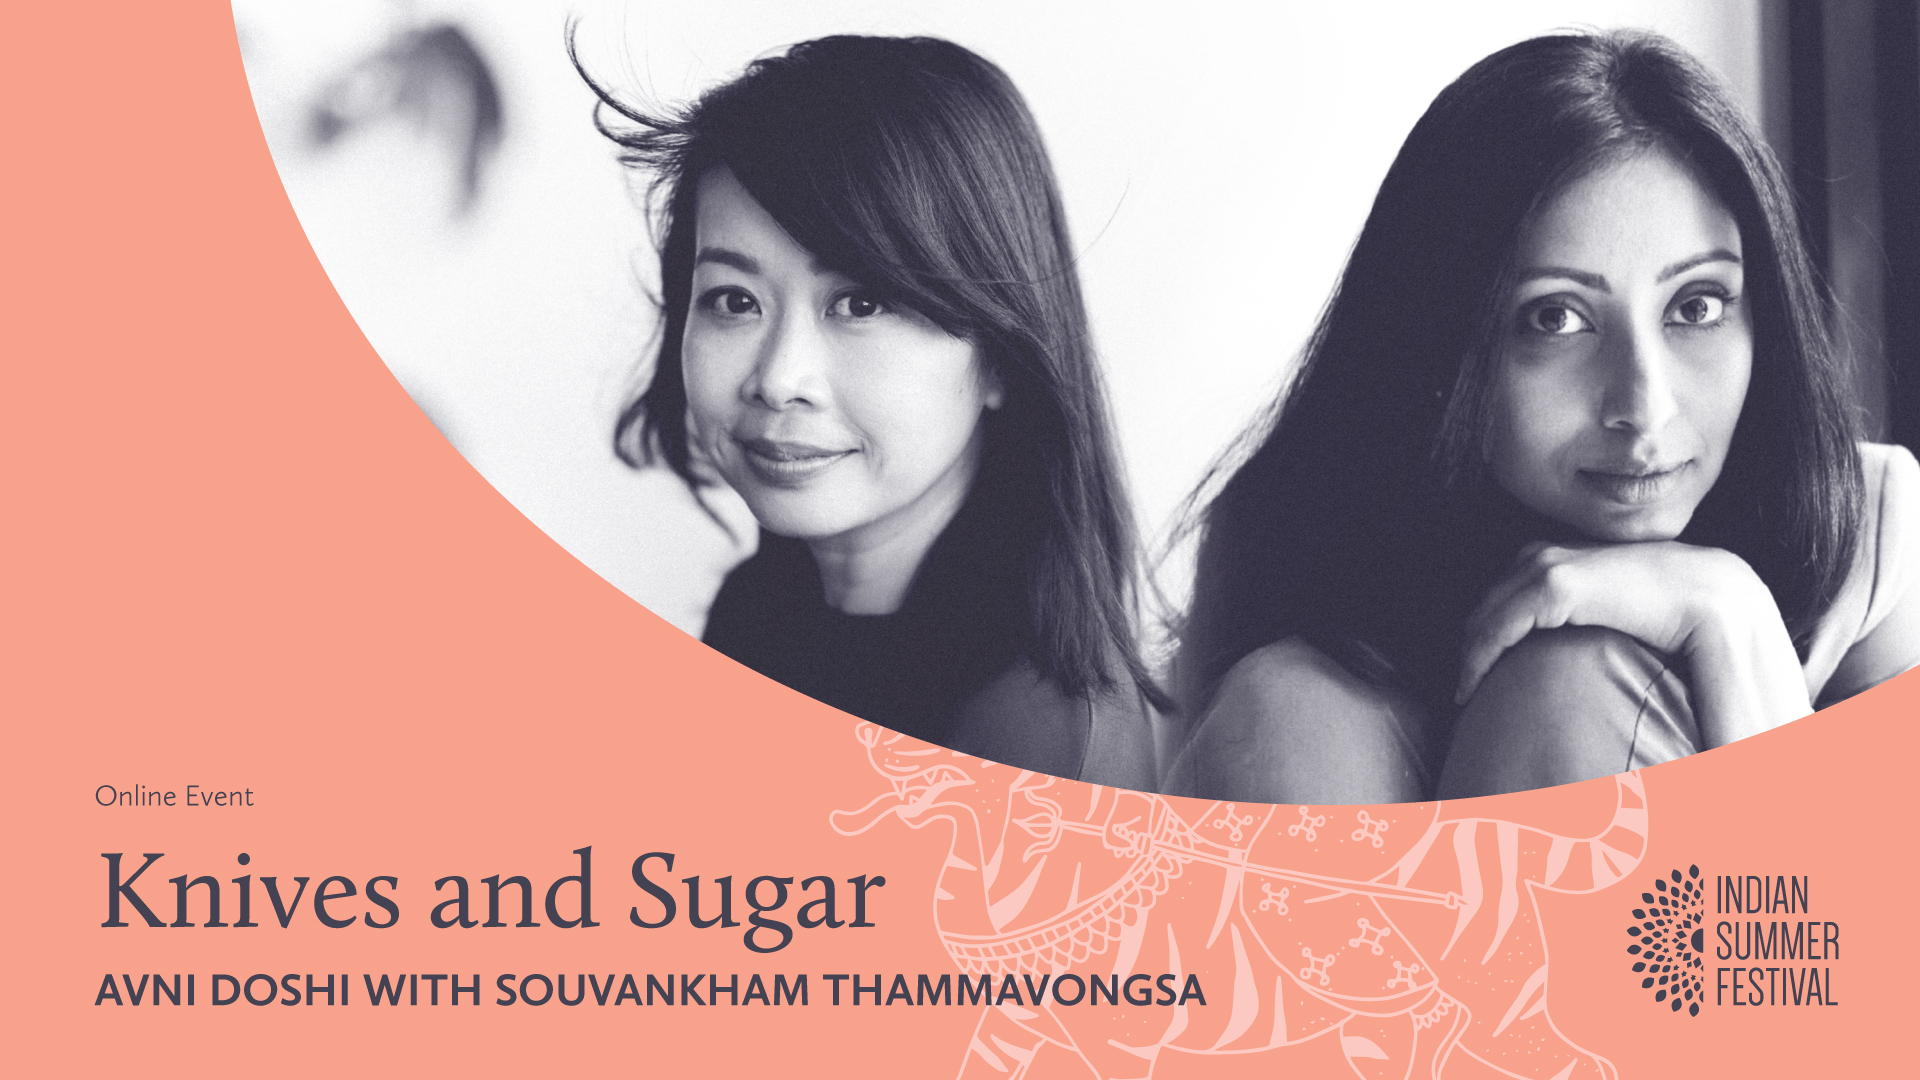 Online event banner for Knives and Sugar event featuring Avni Doshi and Souvankham Thammavongsa.